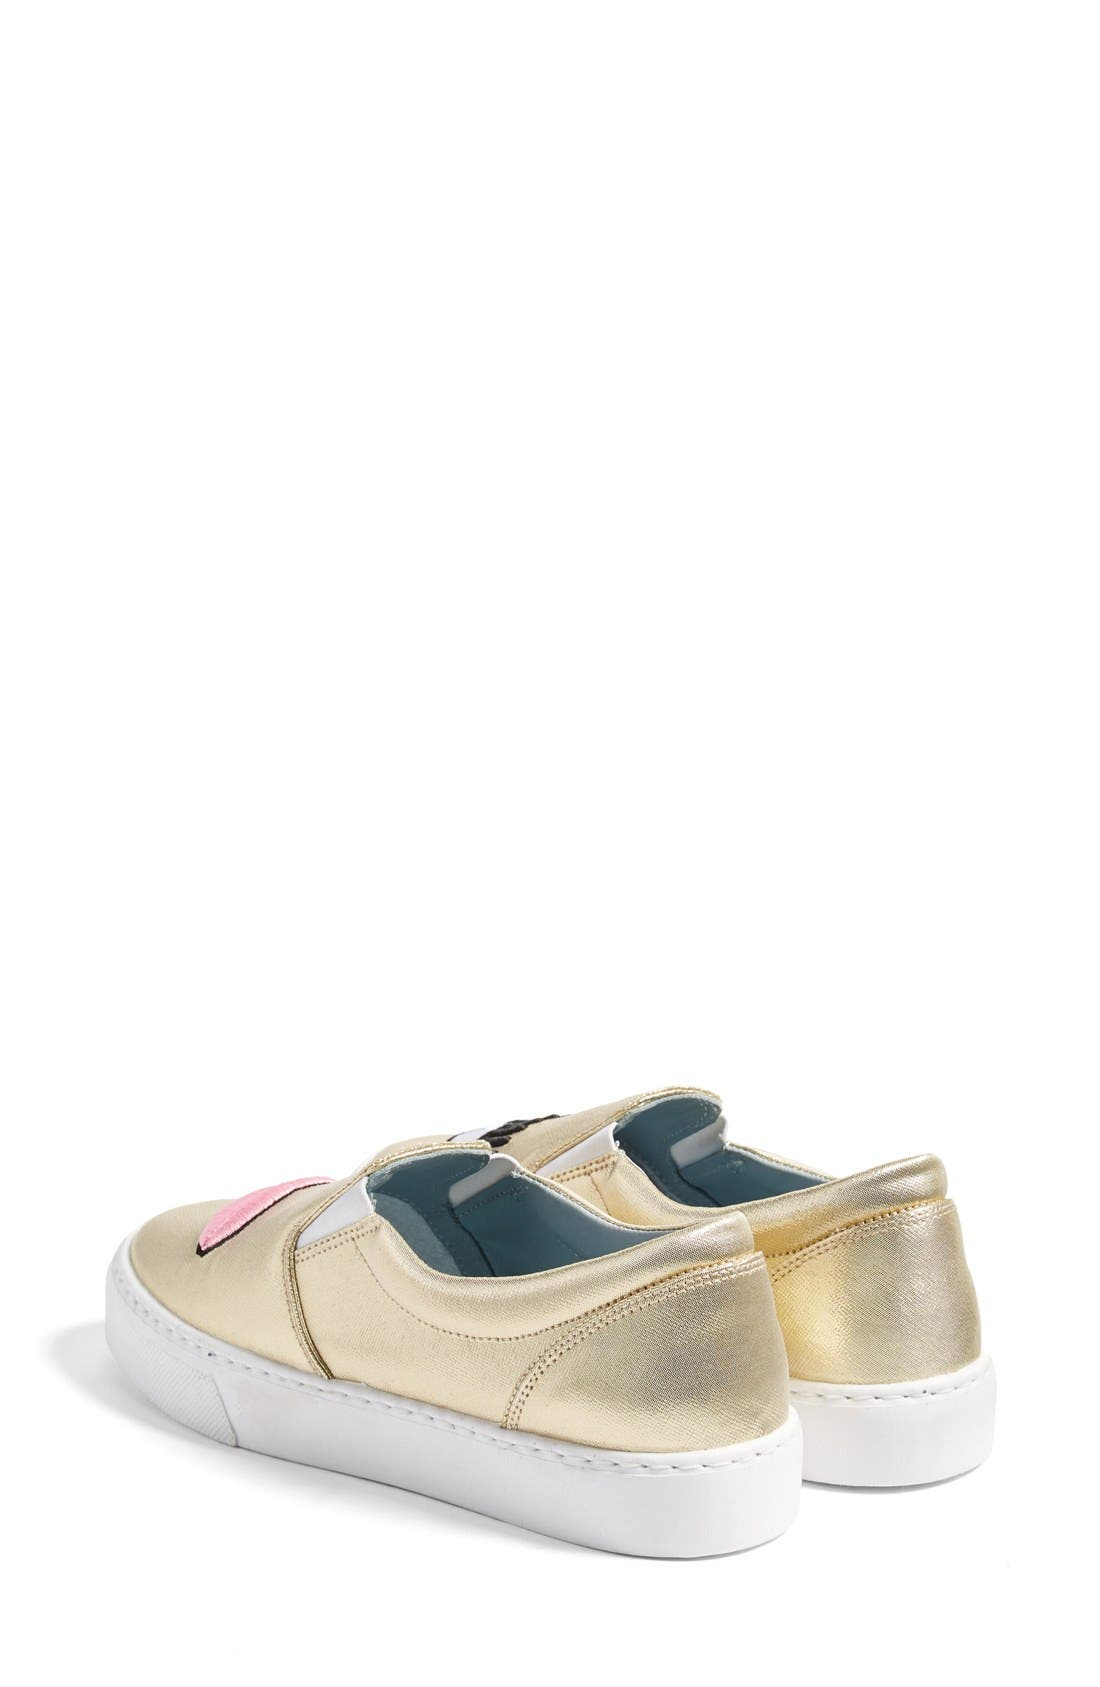 Alternate Image 3  - Chiara Ferragni Flirting Lips Slip-On Sneaker (Women)